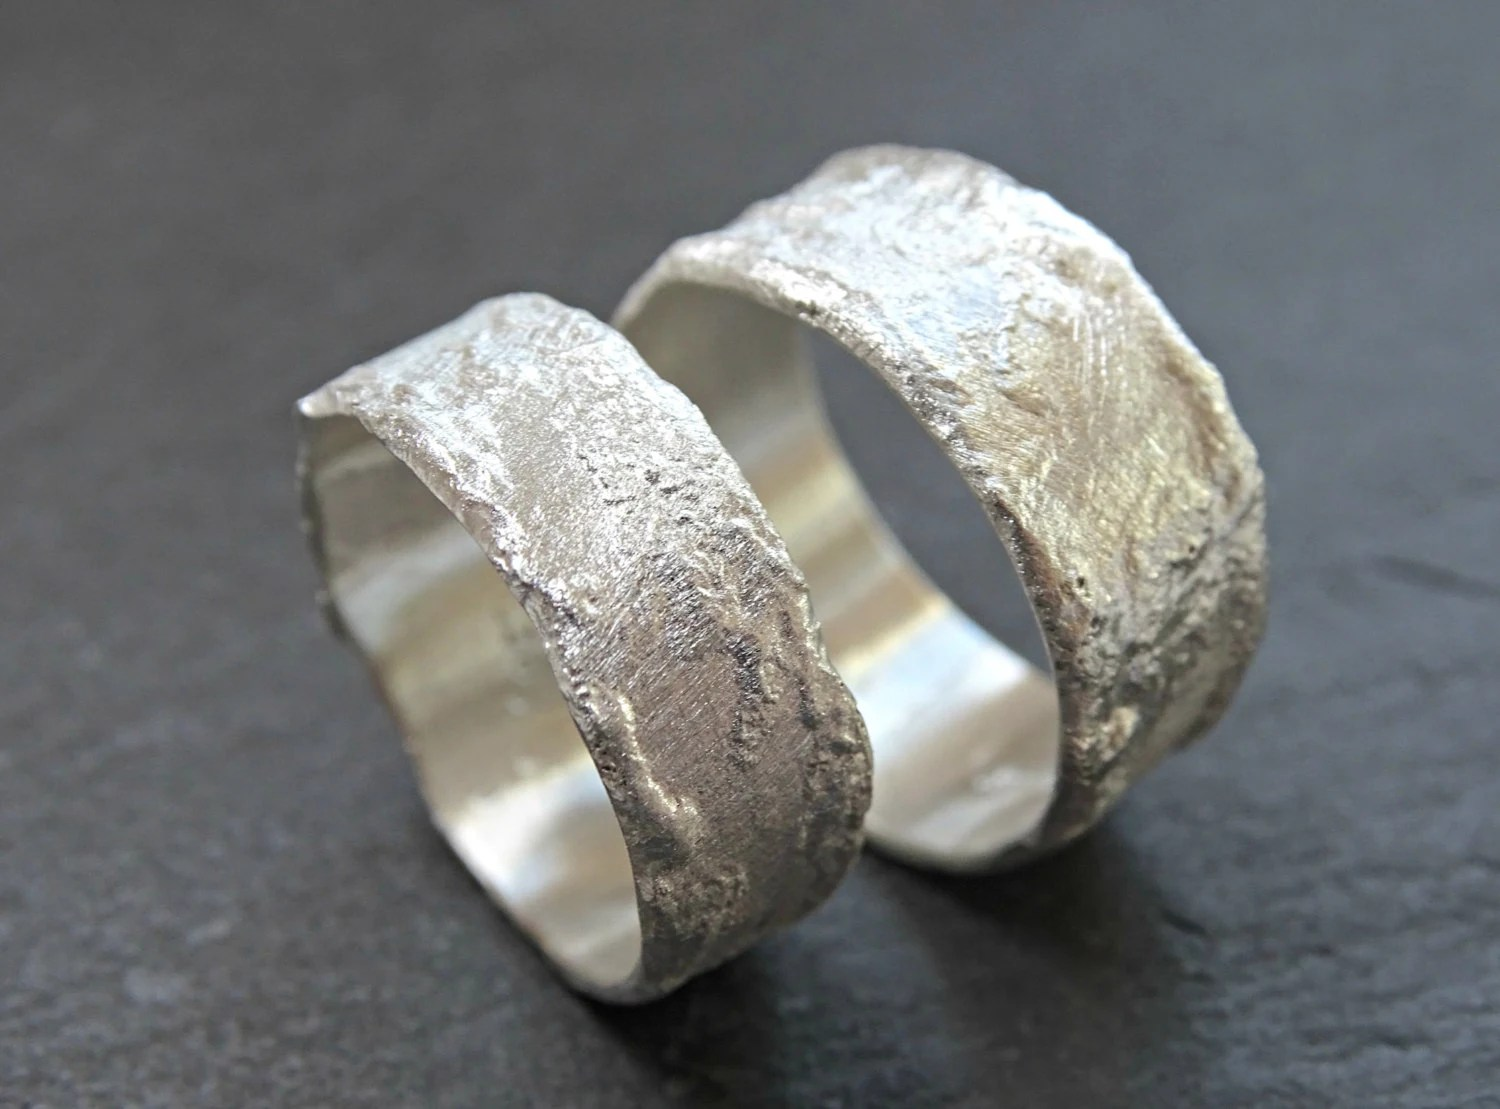 abstract silver ring cool wedding rings unique wedding rings rustic cool wilderness rings matching wedding bands silver structured rings abstract fused ring bands molten